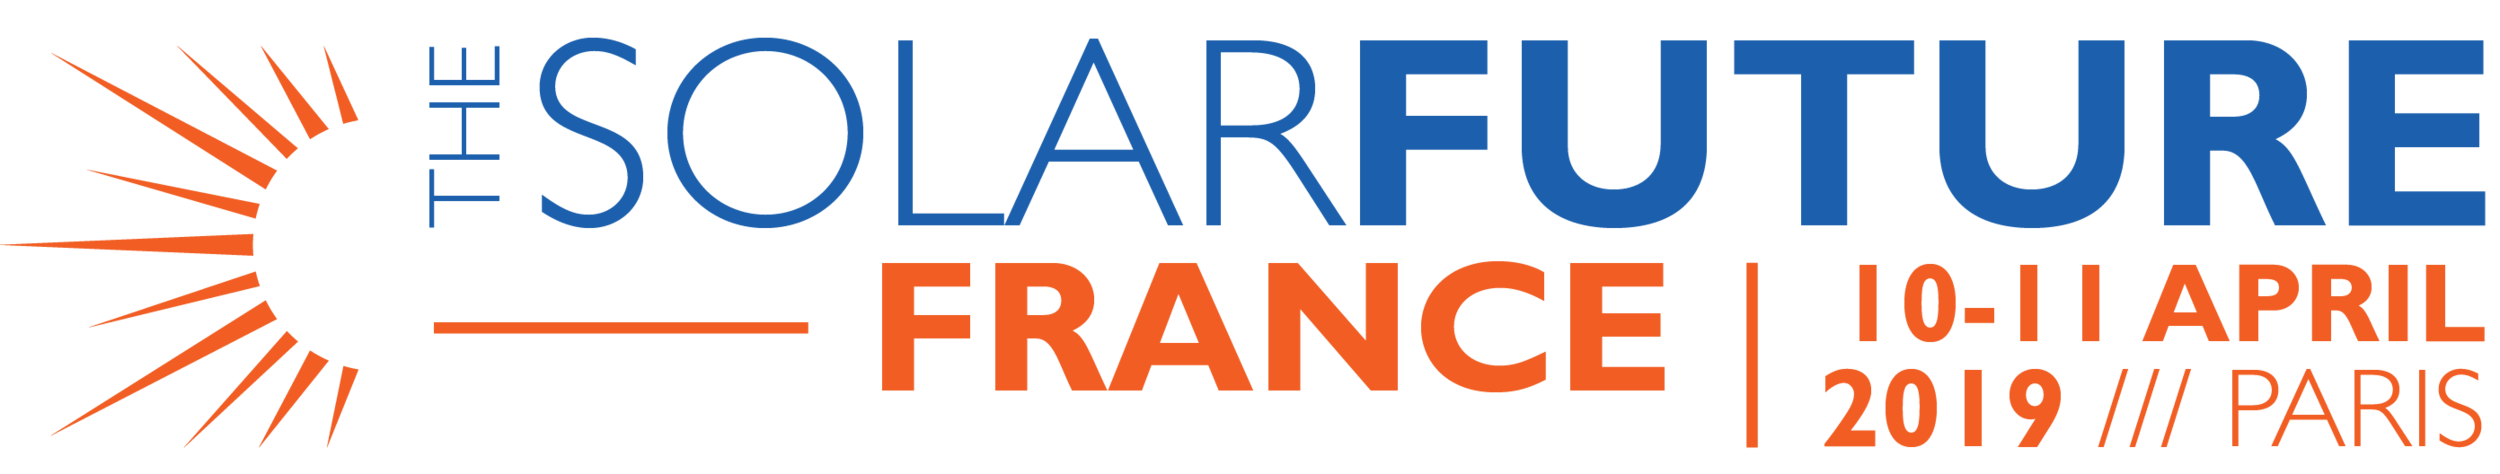 TSF France 2019 - Logo (Horizontal with Date) (Blue and Orange) (300DPI) (PNG).png